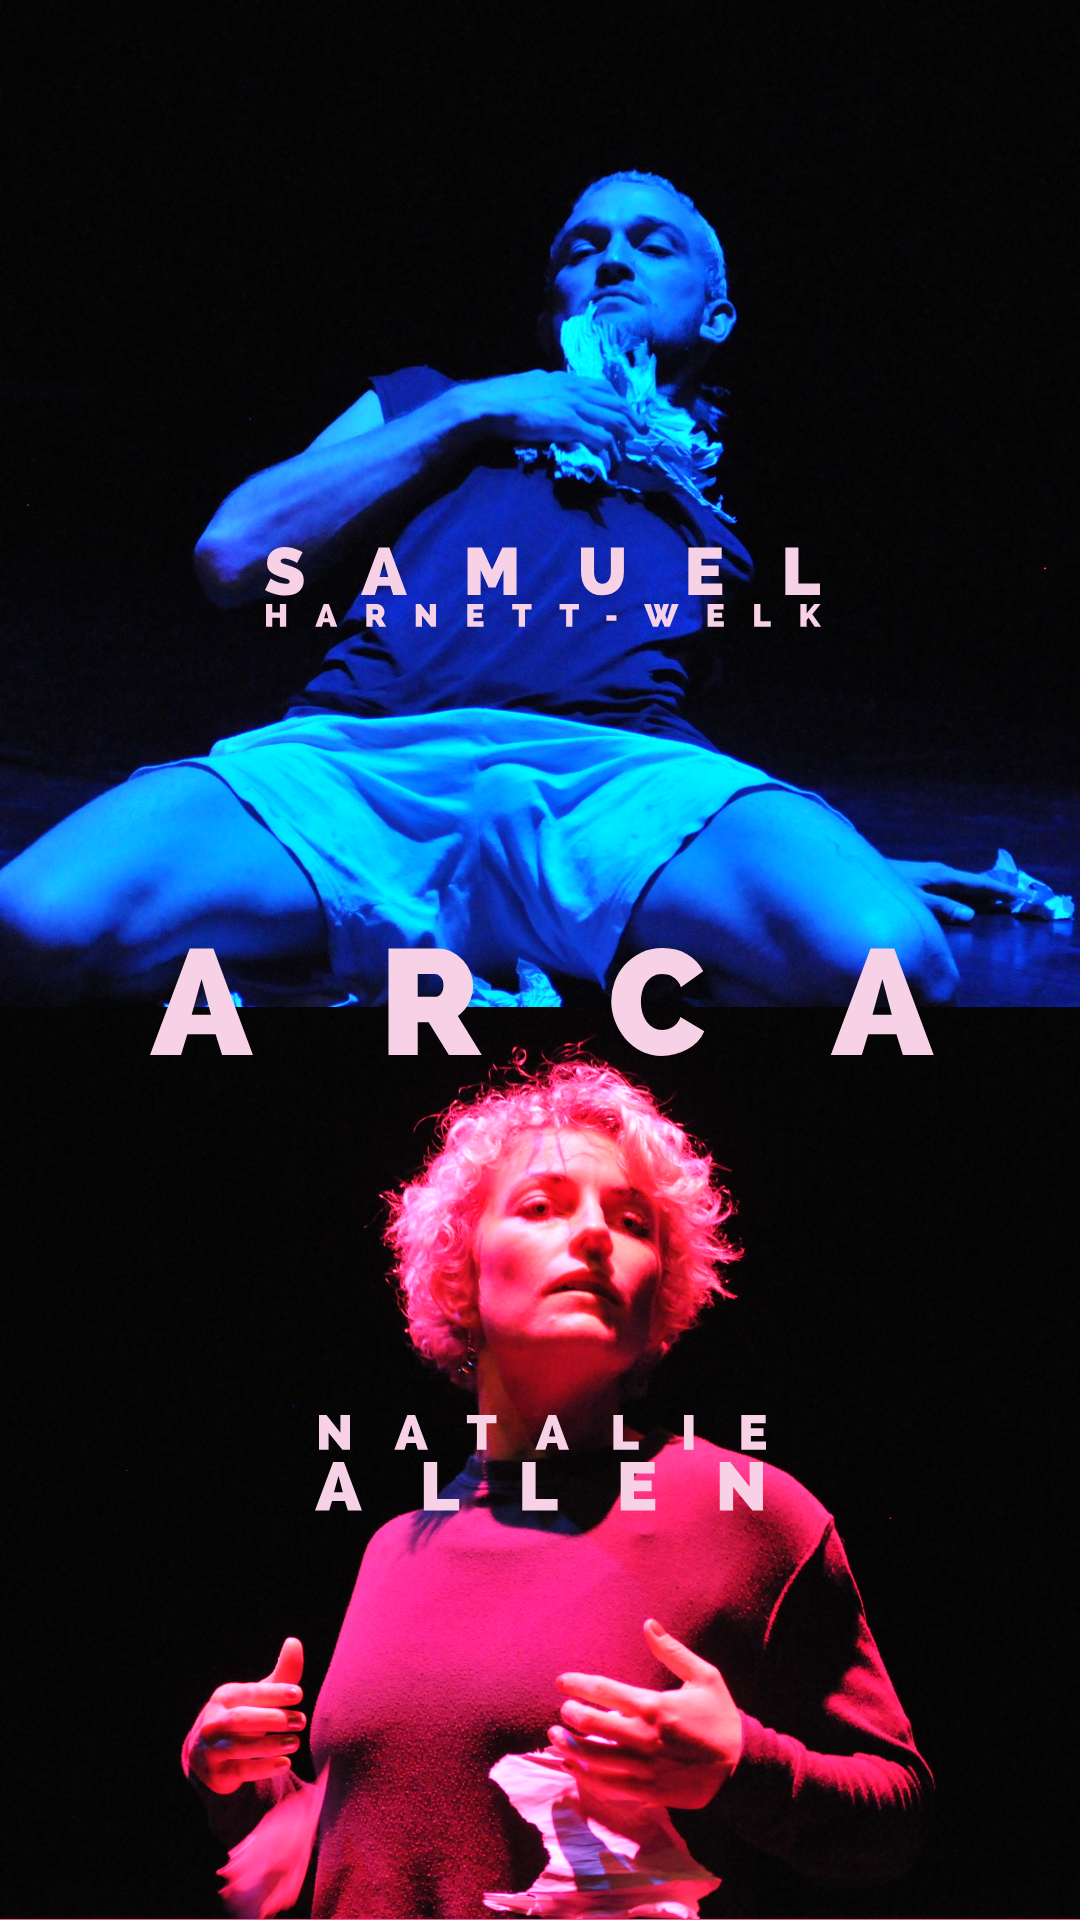 """Throughout June and July, Samuel has been working with Australian dancer Natalie Allen, in residency at Komunitas Salihara in Jakarta, Indonesia.   For the past month the two have been working together exploring their shared improvisational practise along with creating a first draft of an upcoming new work, ARCA.   Collaborating with Filmographer Kiki Febryanti and Set Designer Ratna Odata, A documentary will be soon become available to witness Samuel and Natalie's time in Jakarta and the creation of this work.   Set to premier in 2021, ARCA is a direct response to the two artists interests in """"Body as Landscape"""" and """"Body History"""". Natalie and Samuel will continue to develop their during 2019 and 2020.   With Thanks to;   STRUT DANCE, The Western Australian Government (Department of Local Government, Sport and Cultural Industries) and Komunitas Salihara"""